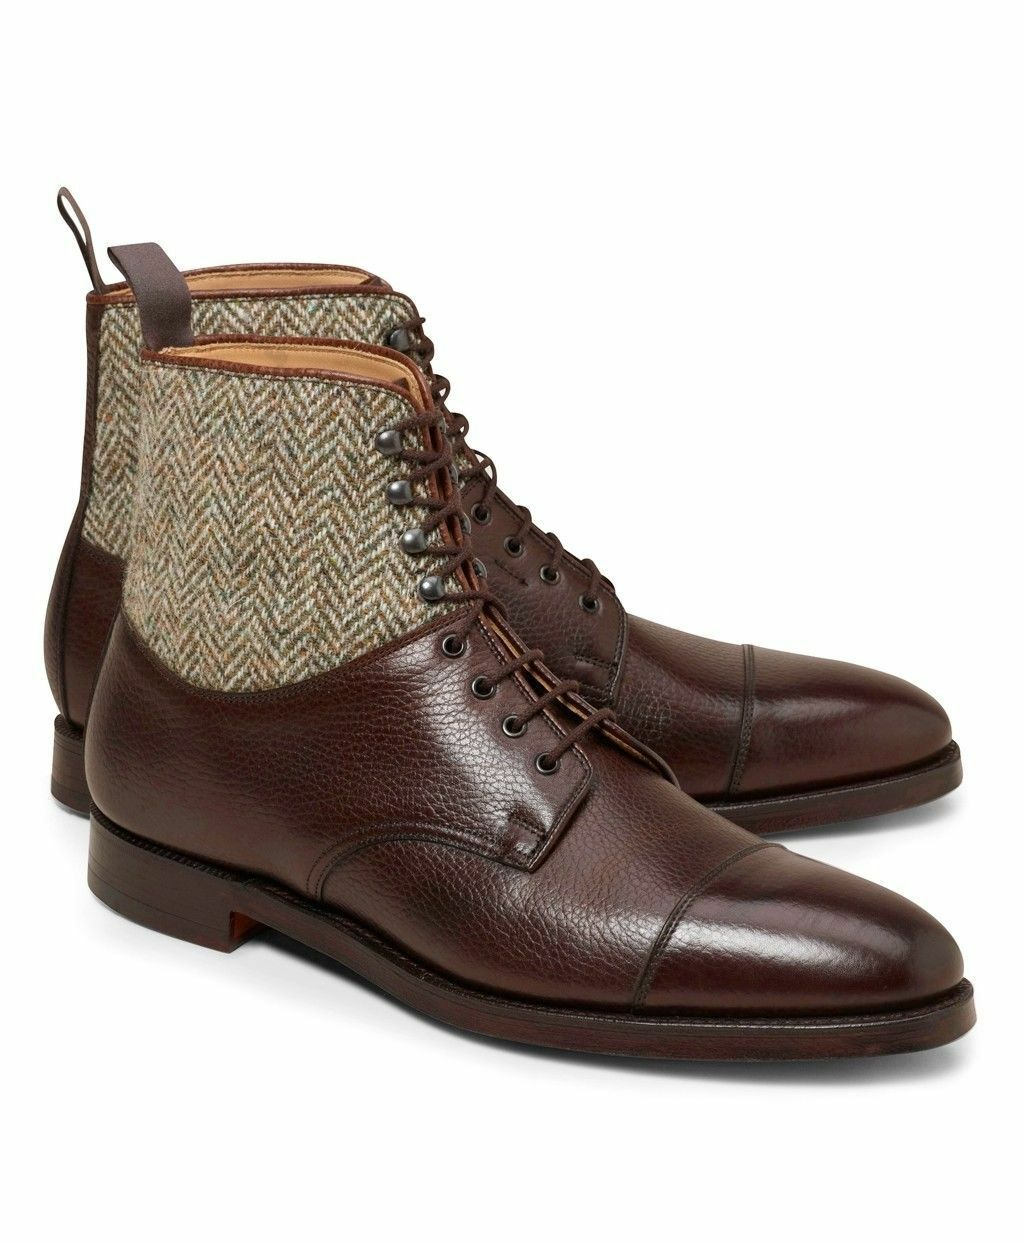 MEN NEU HANDMADE REAL LEATHER Schuhe TWEED FABRIC BROWN FORMAL BOOTS